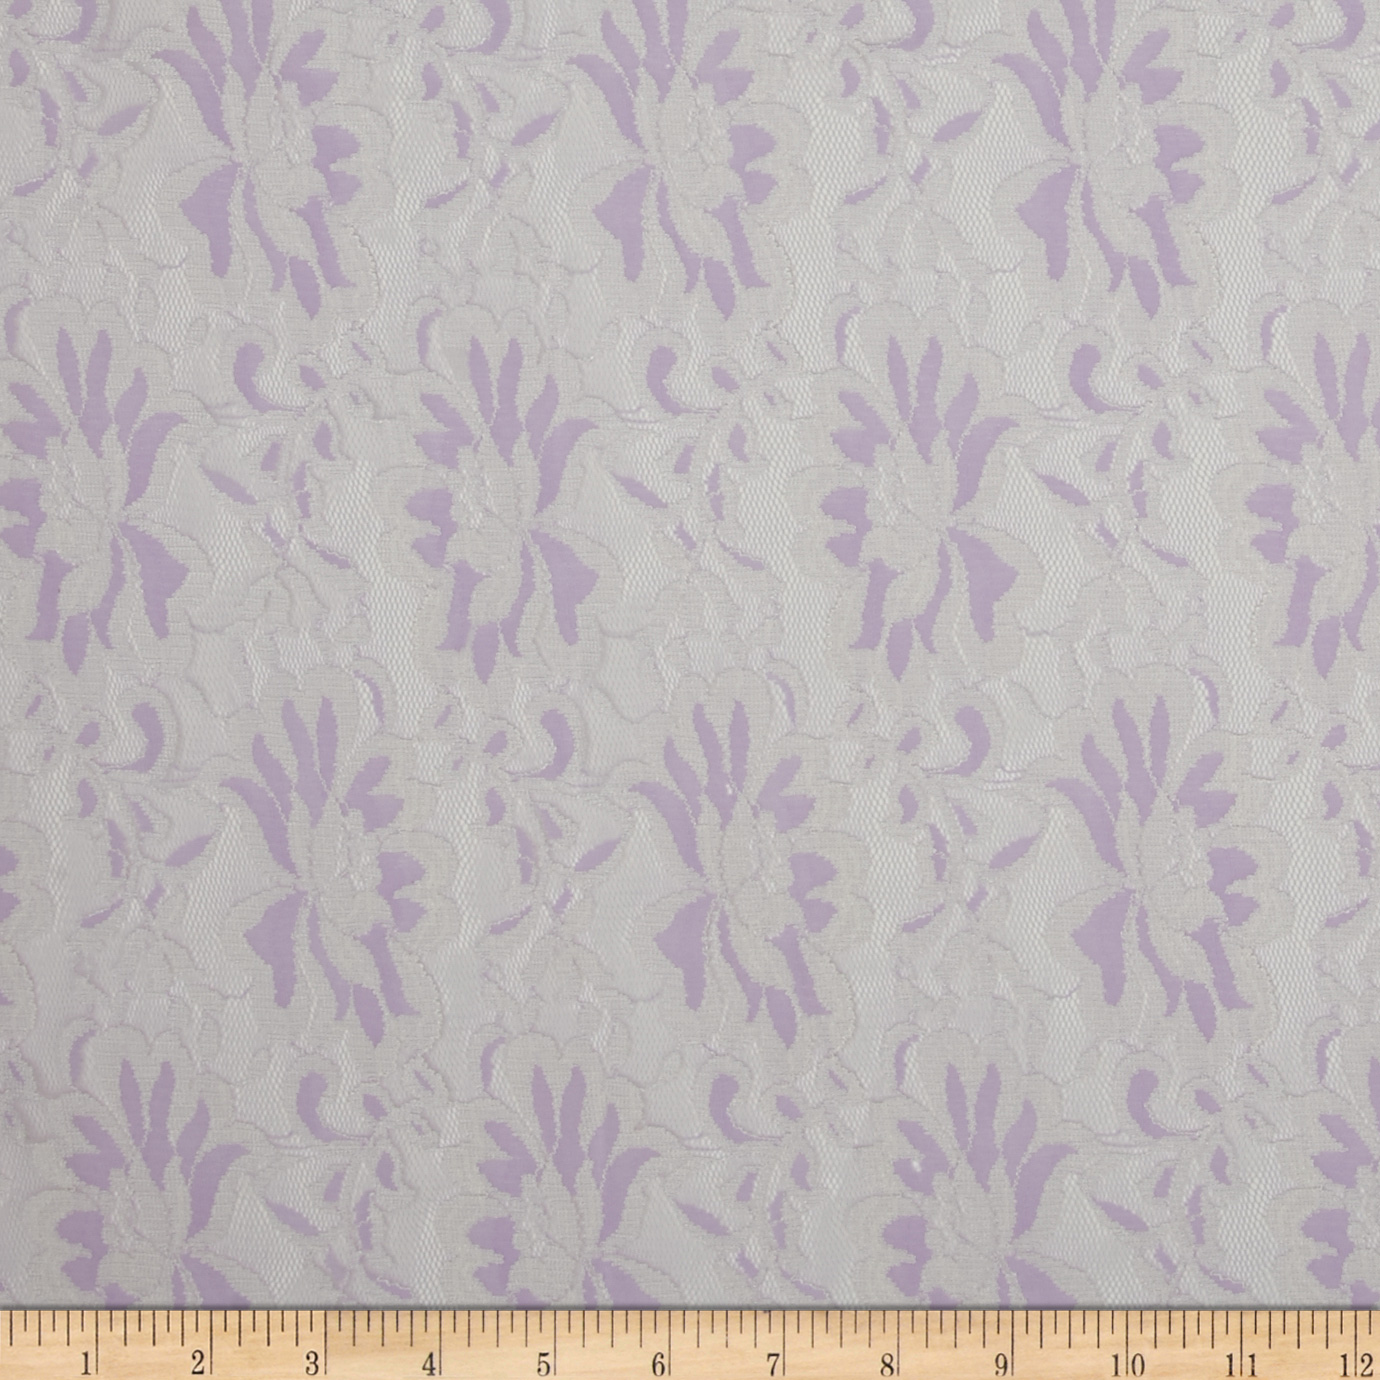 Stretch Lace Lavender/White Fabric